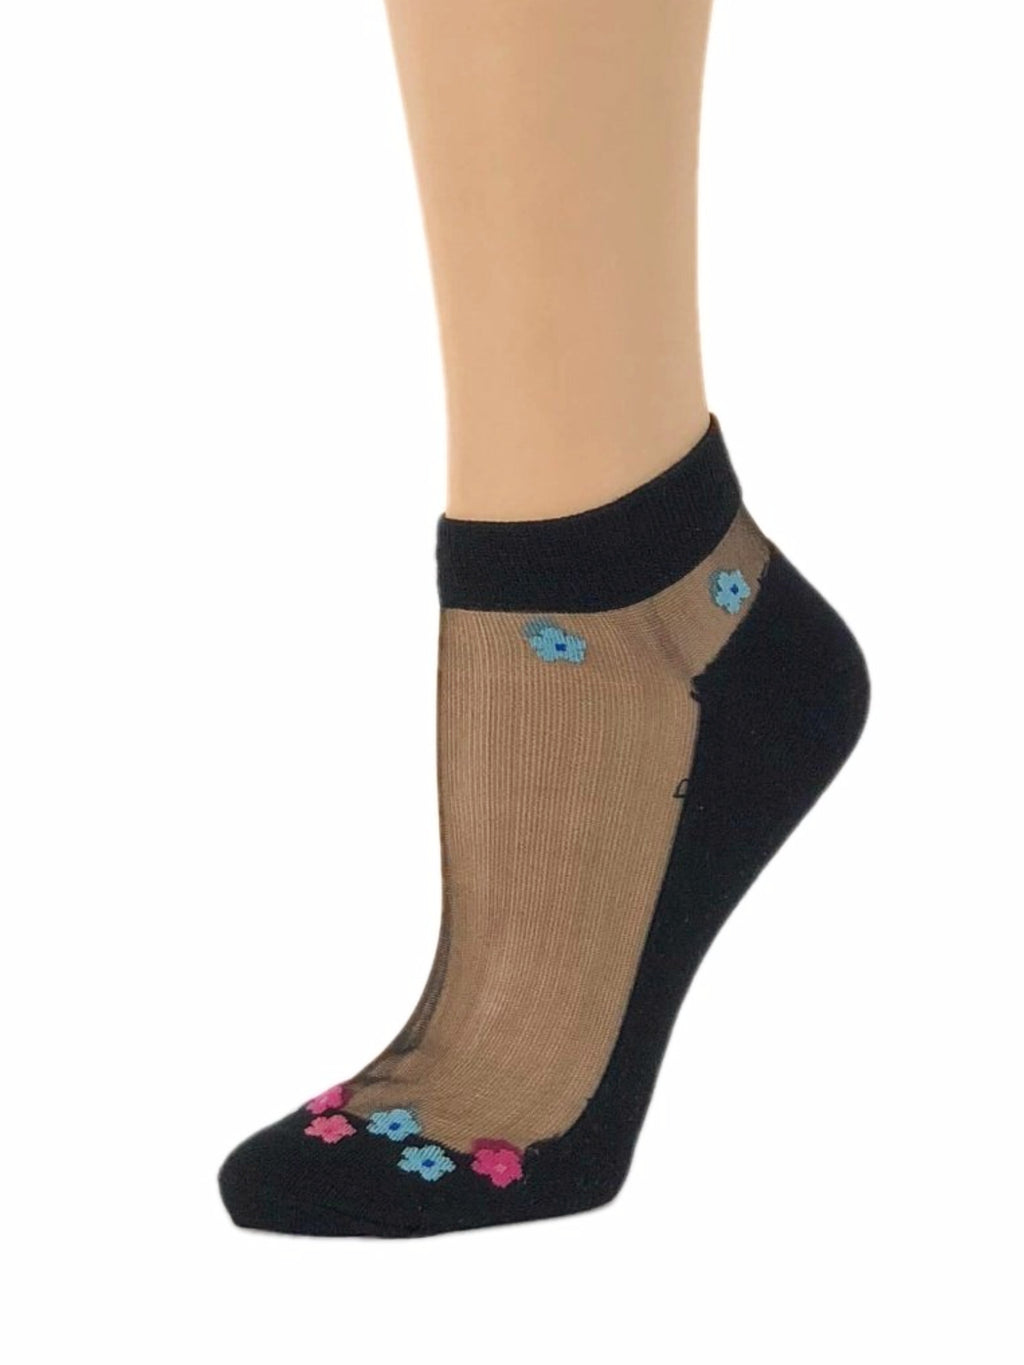 Mini Pink/Blue Flowers Ankle Sheer Socks - Global Trendz Fashion®